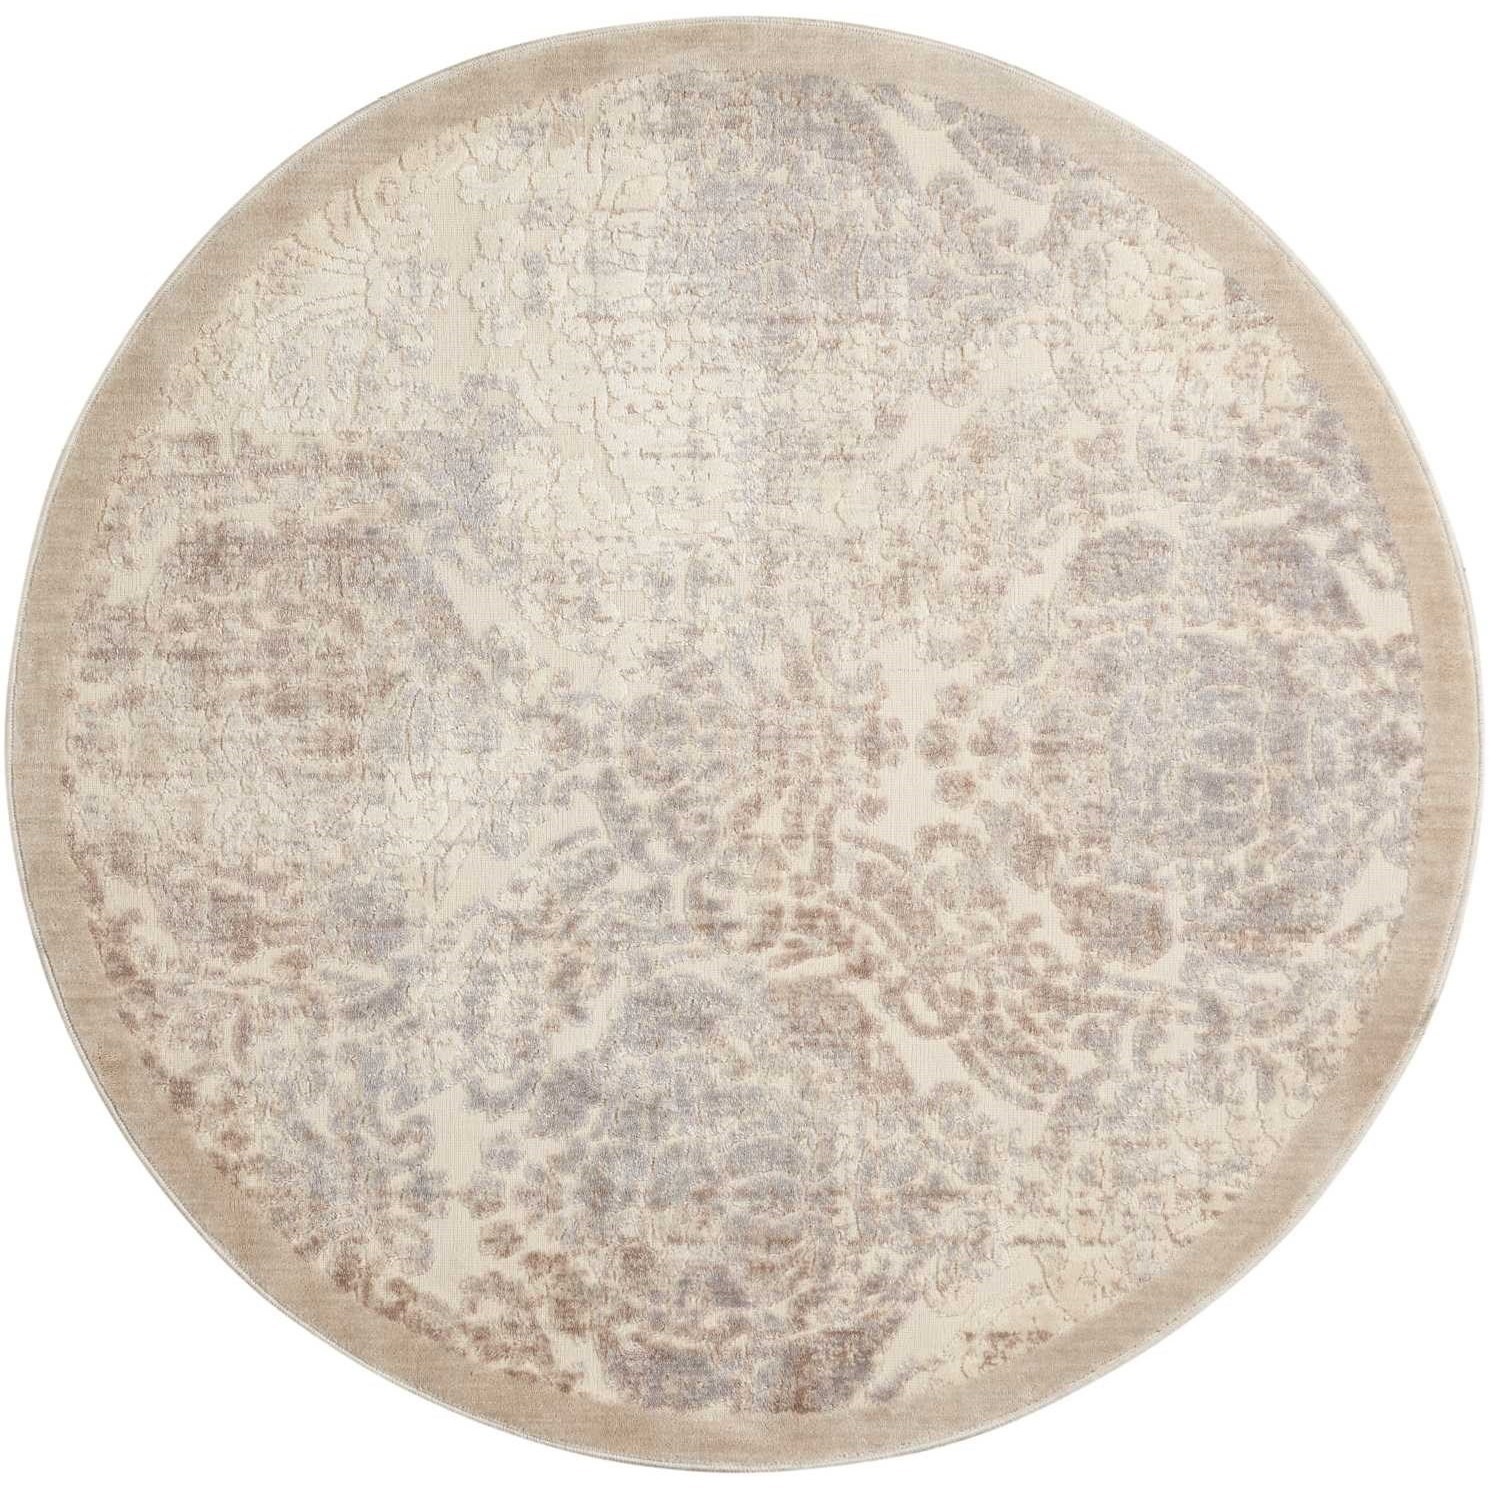 Nourison graphic illusions 7399quot x 7399quot ivory round rug for Graphic illusions